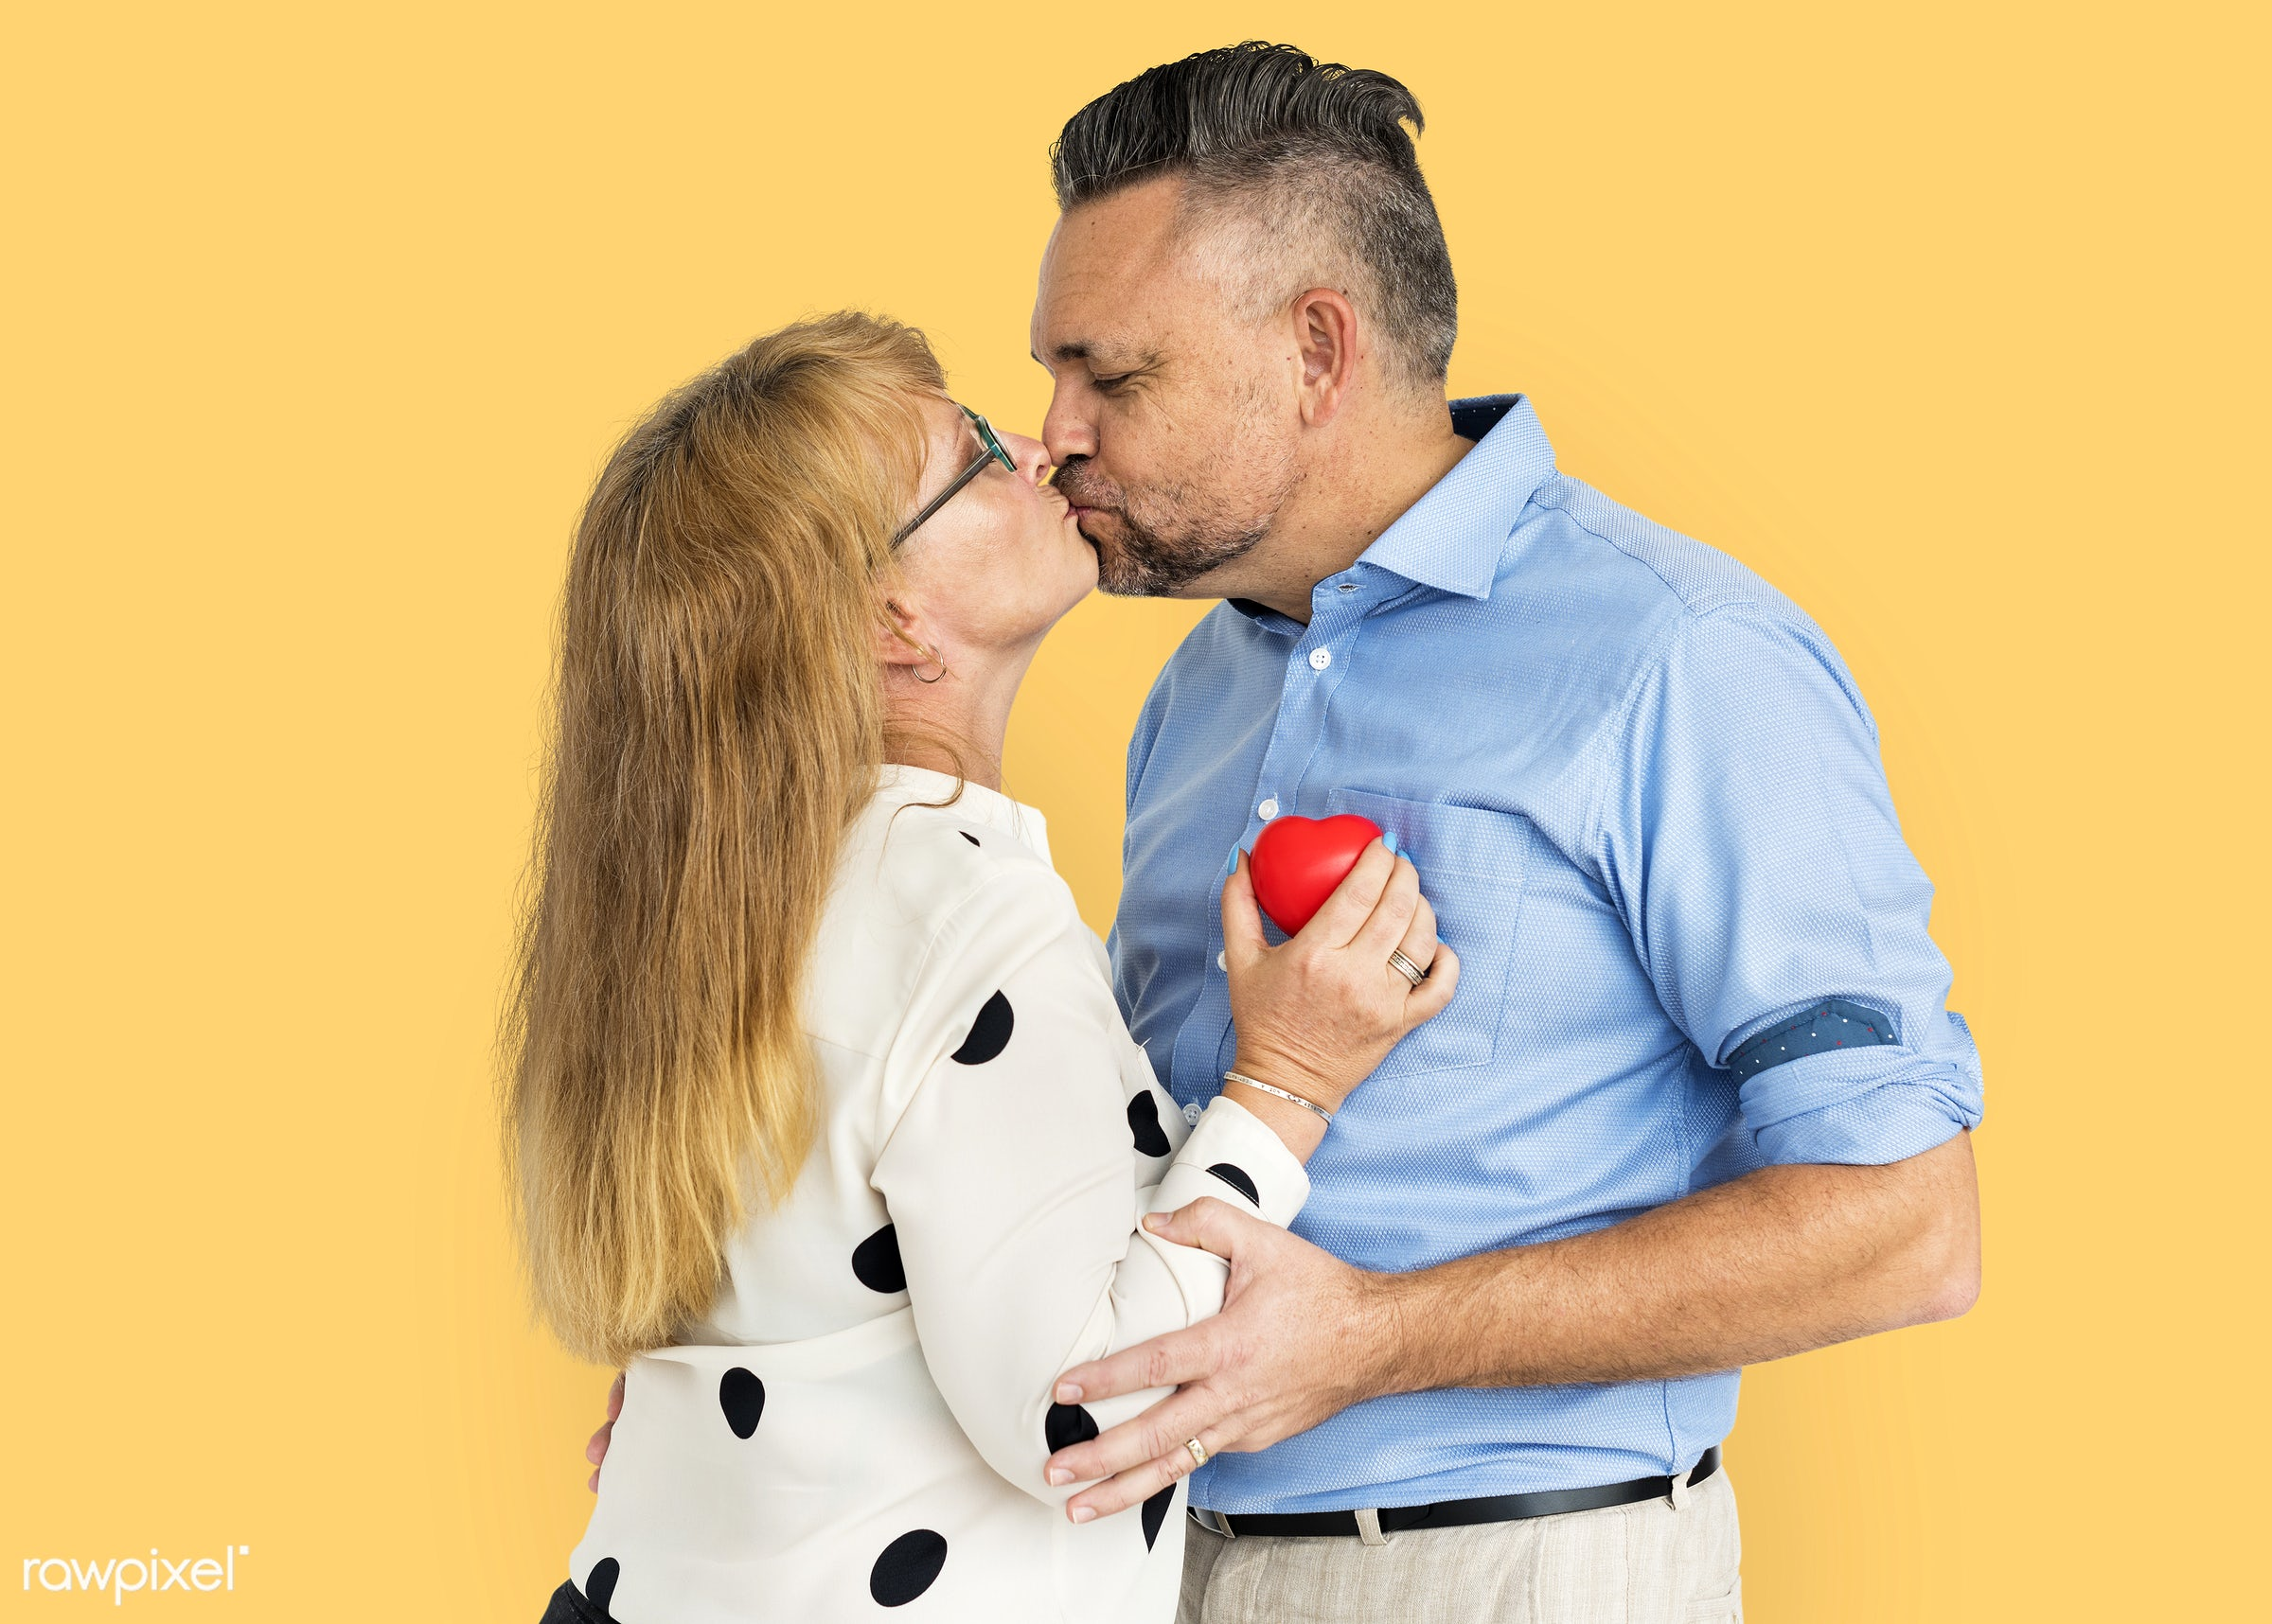 studio, person, yellow, people, together, caucasian, love, family, woman, care, cheerful, smiling, affection, heart, kissing...